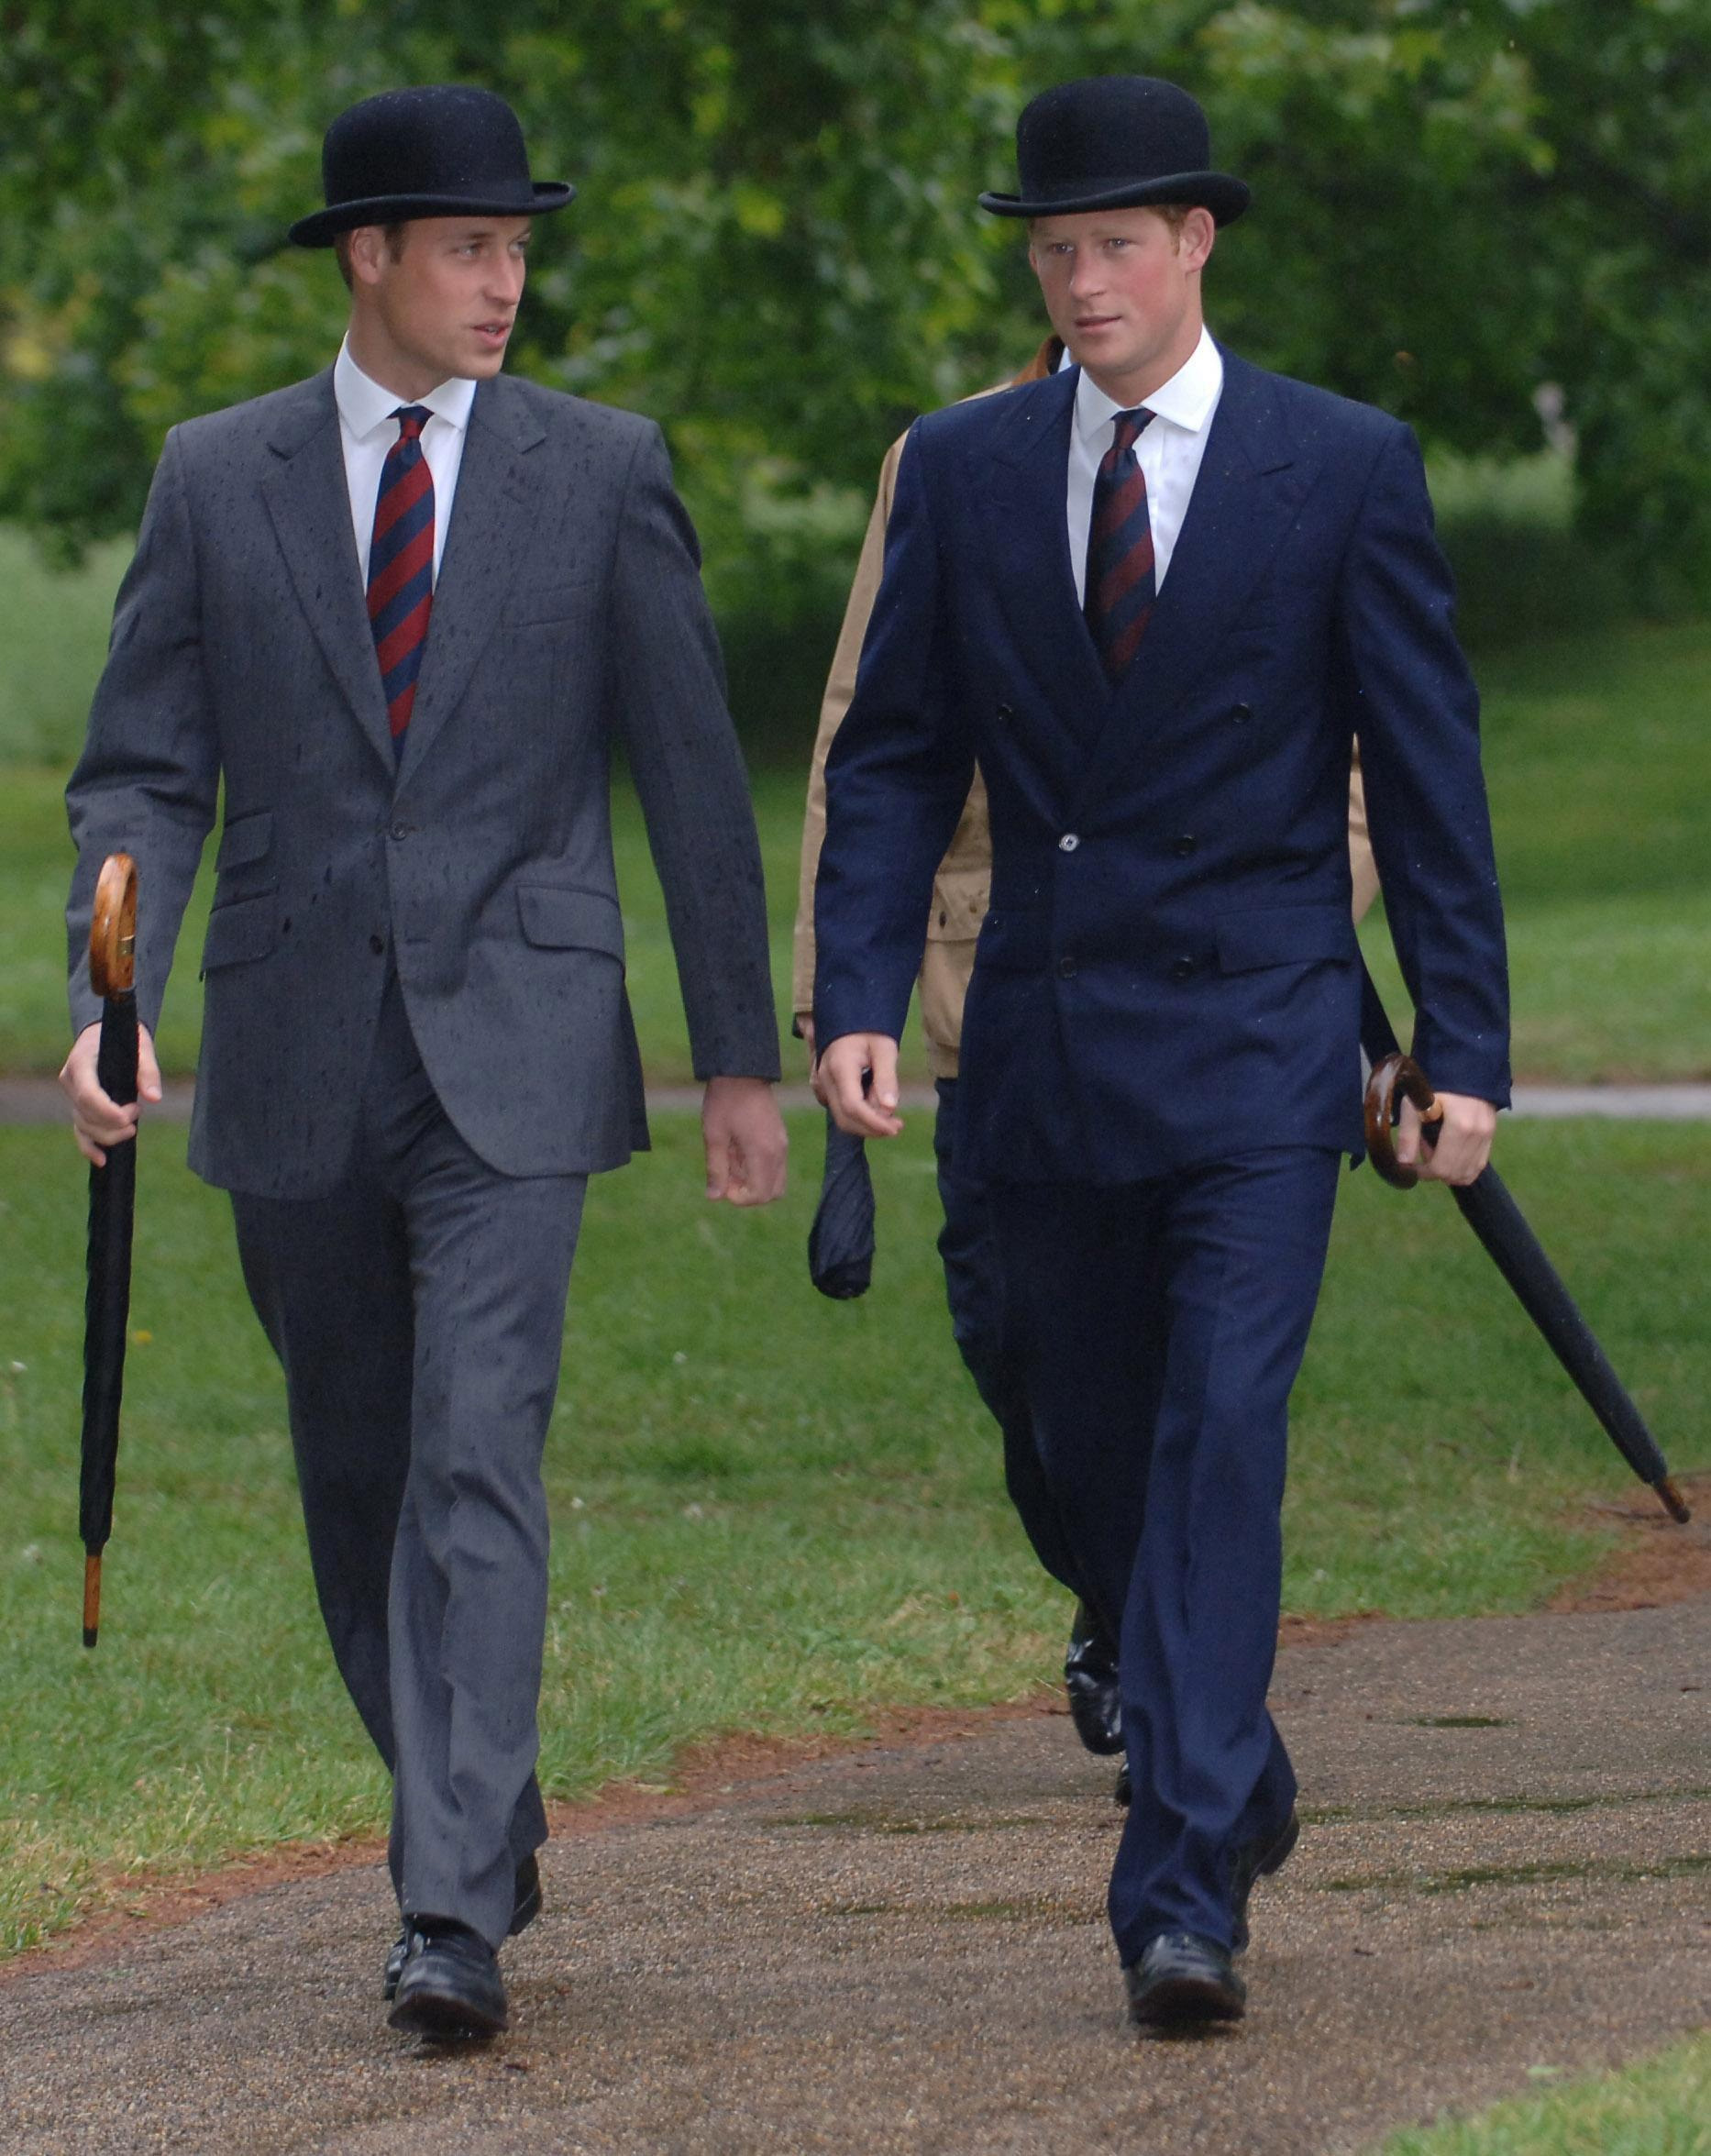 Prince William and Prince Harry, right, parade in suits and bowler hats with the Combined Cavalry Old Comrades' Association, in Hyde Park, London on May 13, 2007.